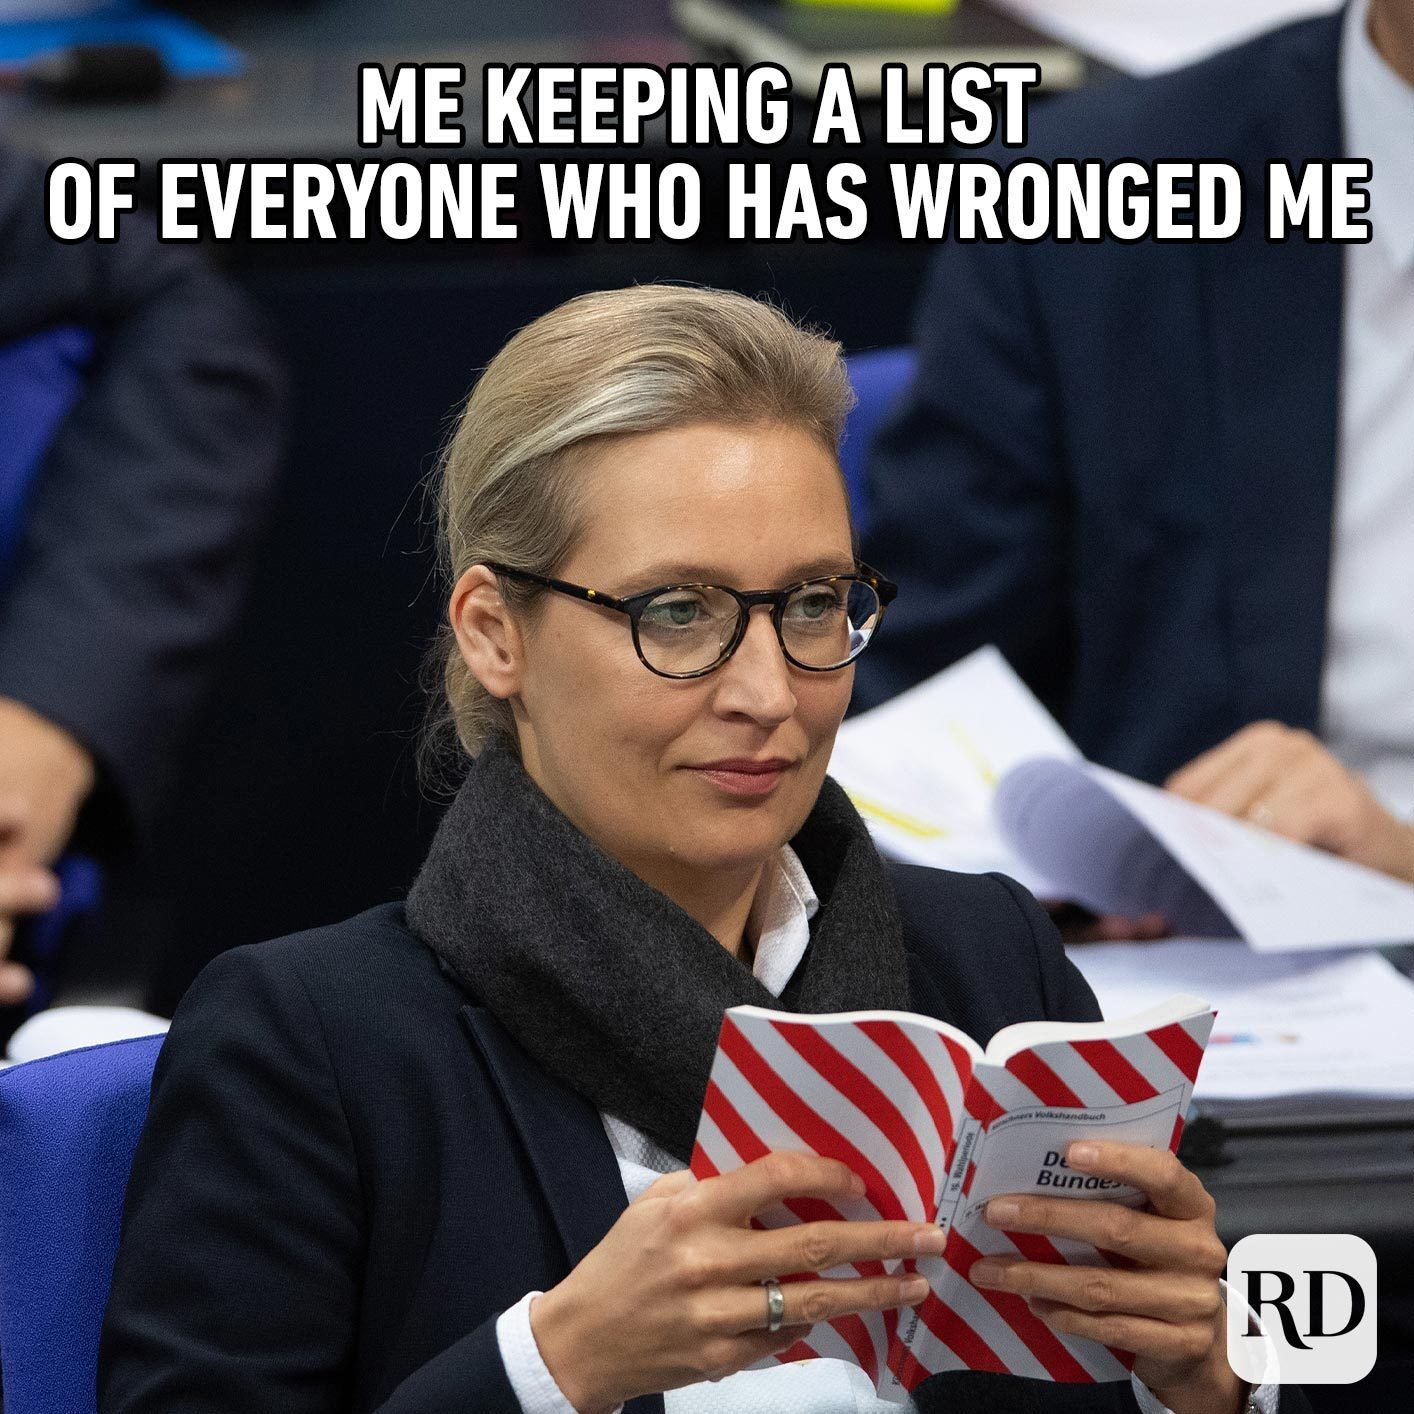 Woman looking skeptically at paper. Meme text: Me keeping a list of everyone who has wronged me